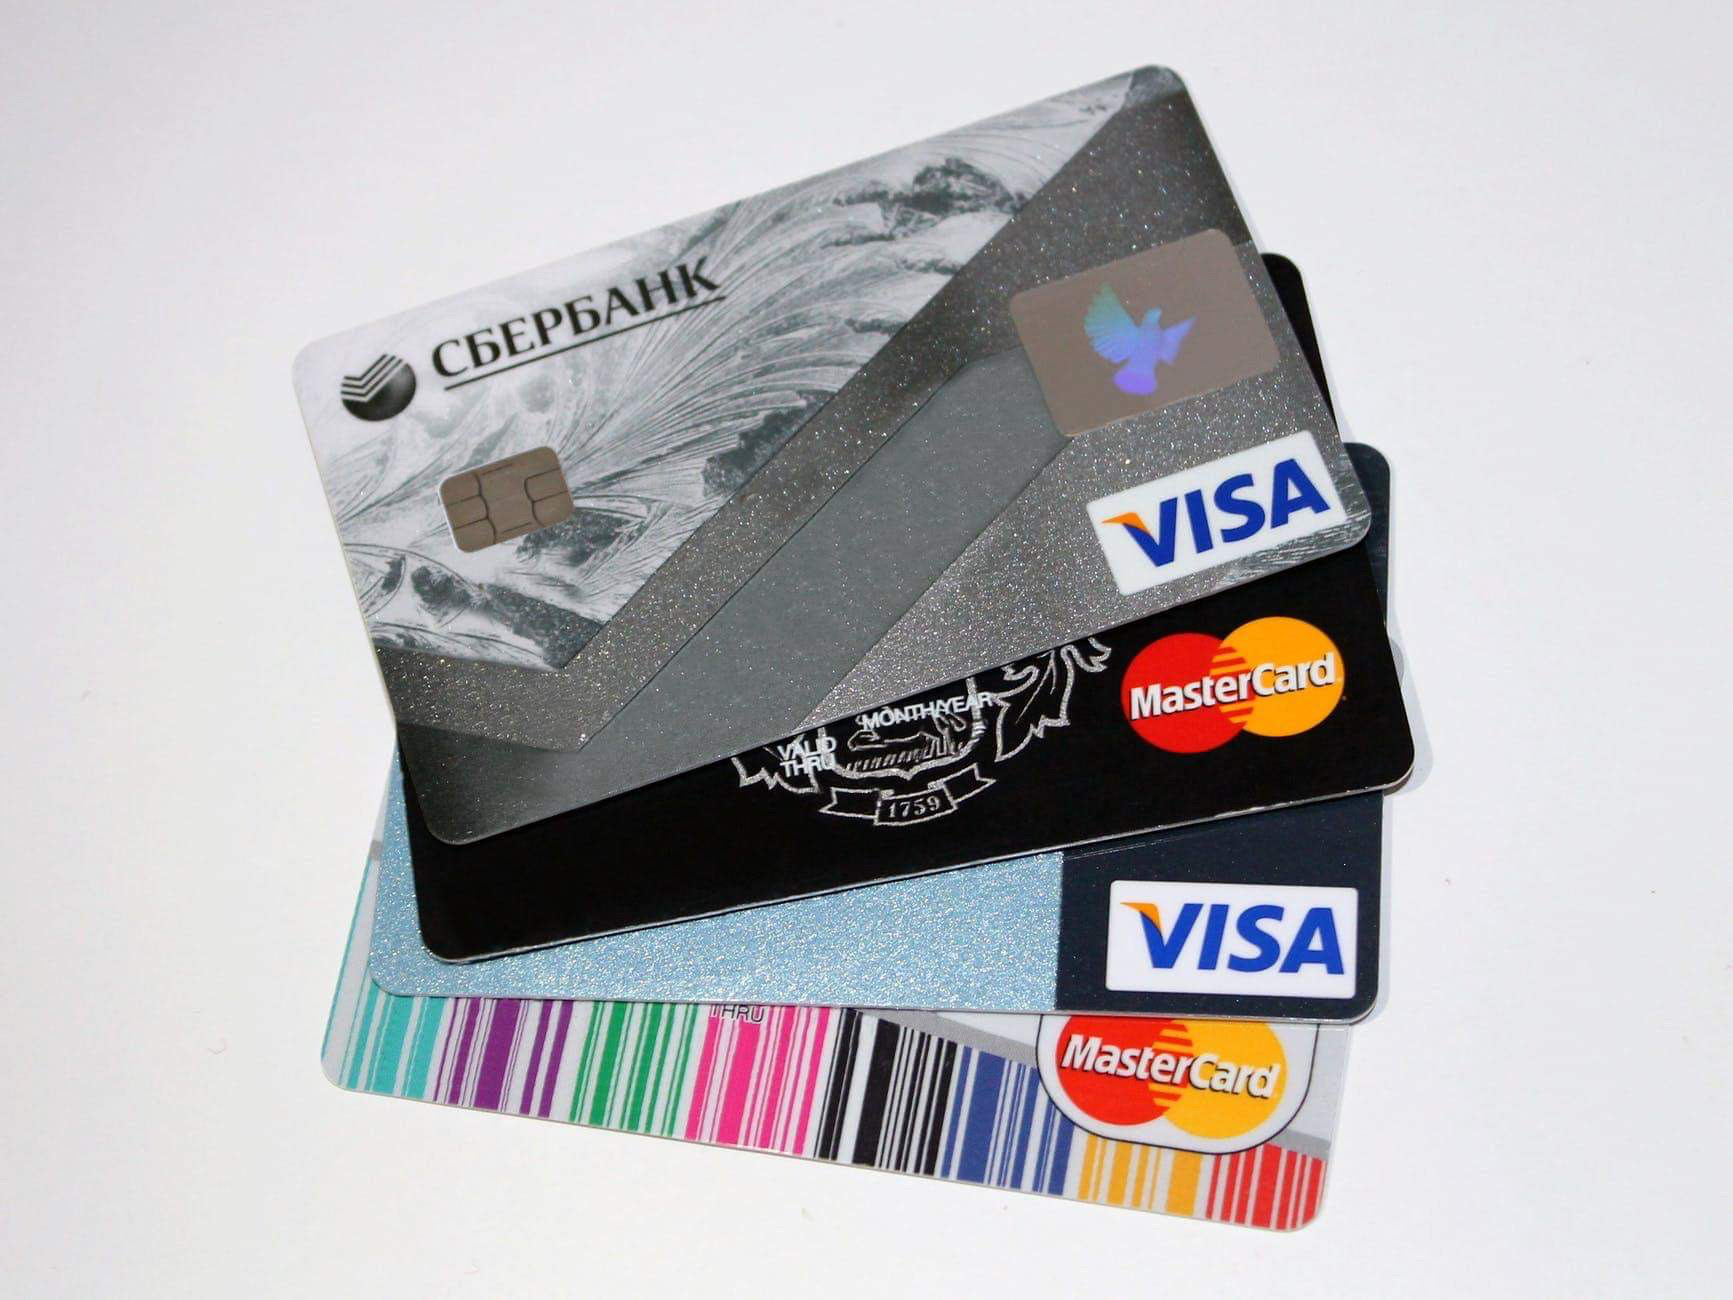 The different bank Credit and Debit cards in detail